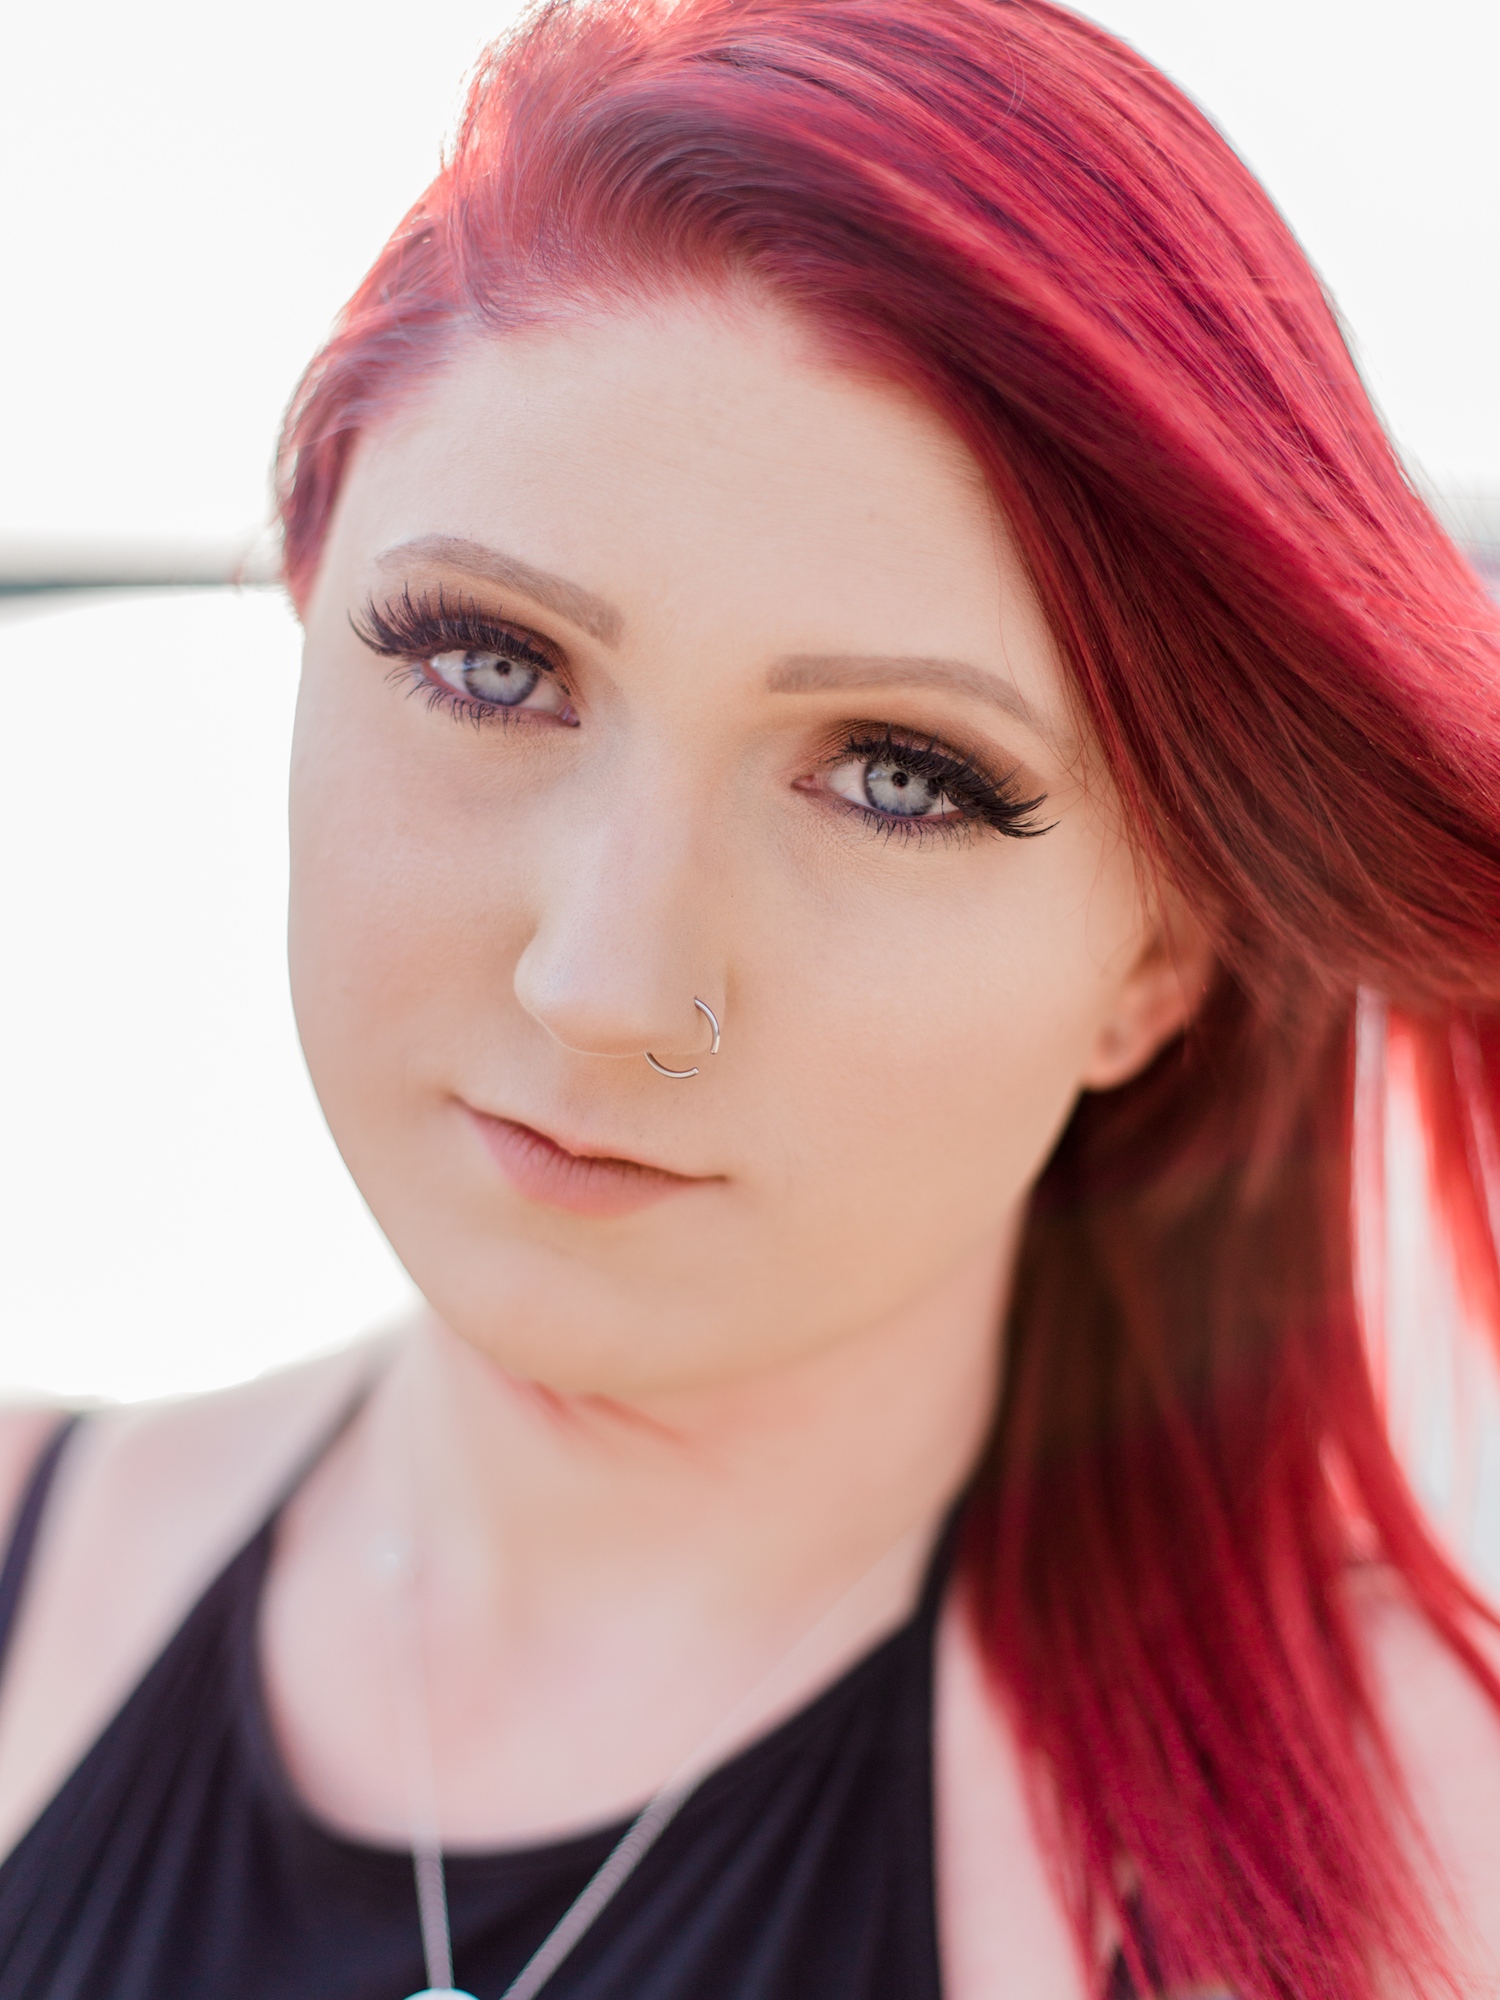 Edgy high school senior style- hoop nose ring, false eyelashes, and bright red layered hair. Senior session at a lake at Acworth Beach at Cauble Park in Acworth, Georgia. Photo by Kesia Marie Photography- fine art portrait photographer in Georgia.